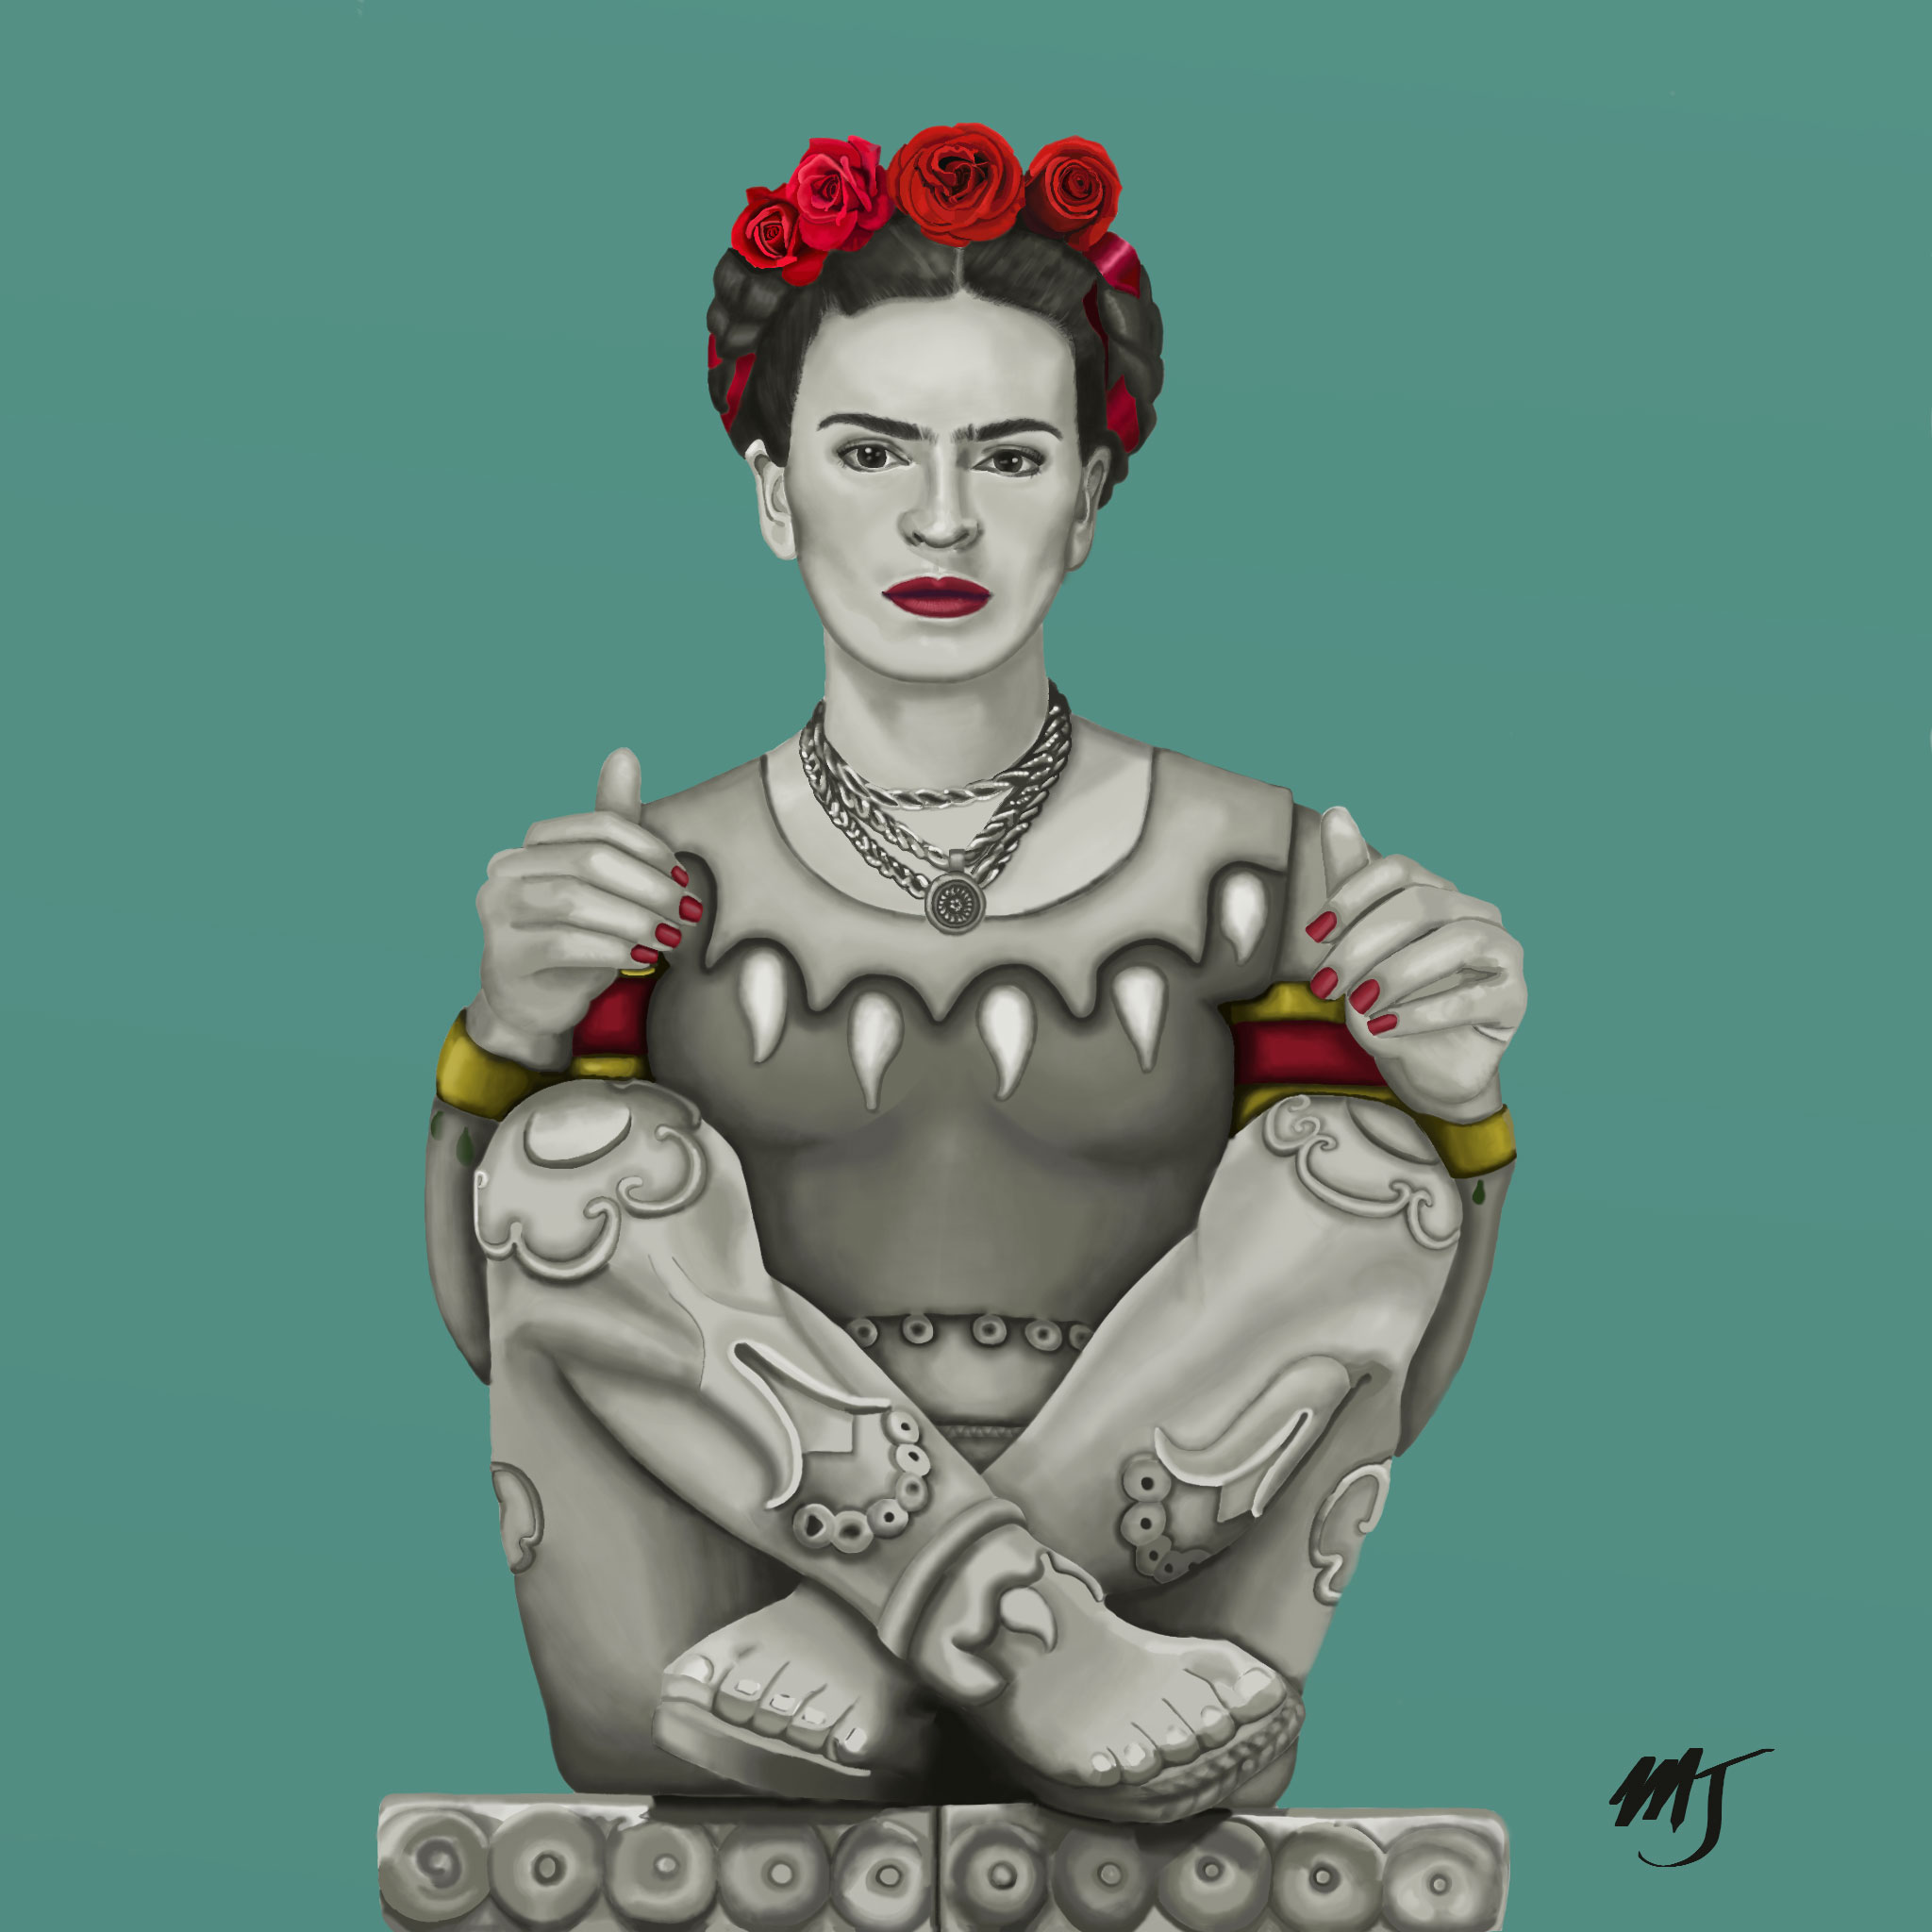 Frida's Flowers, digital art, 2017